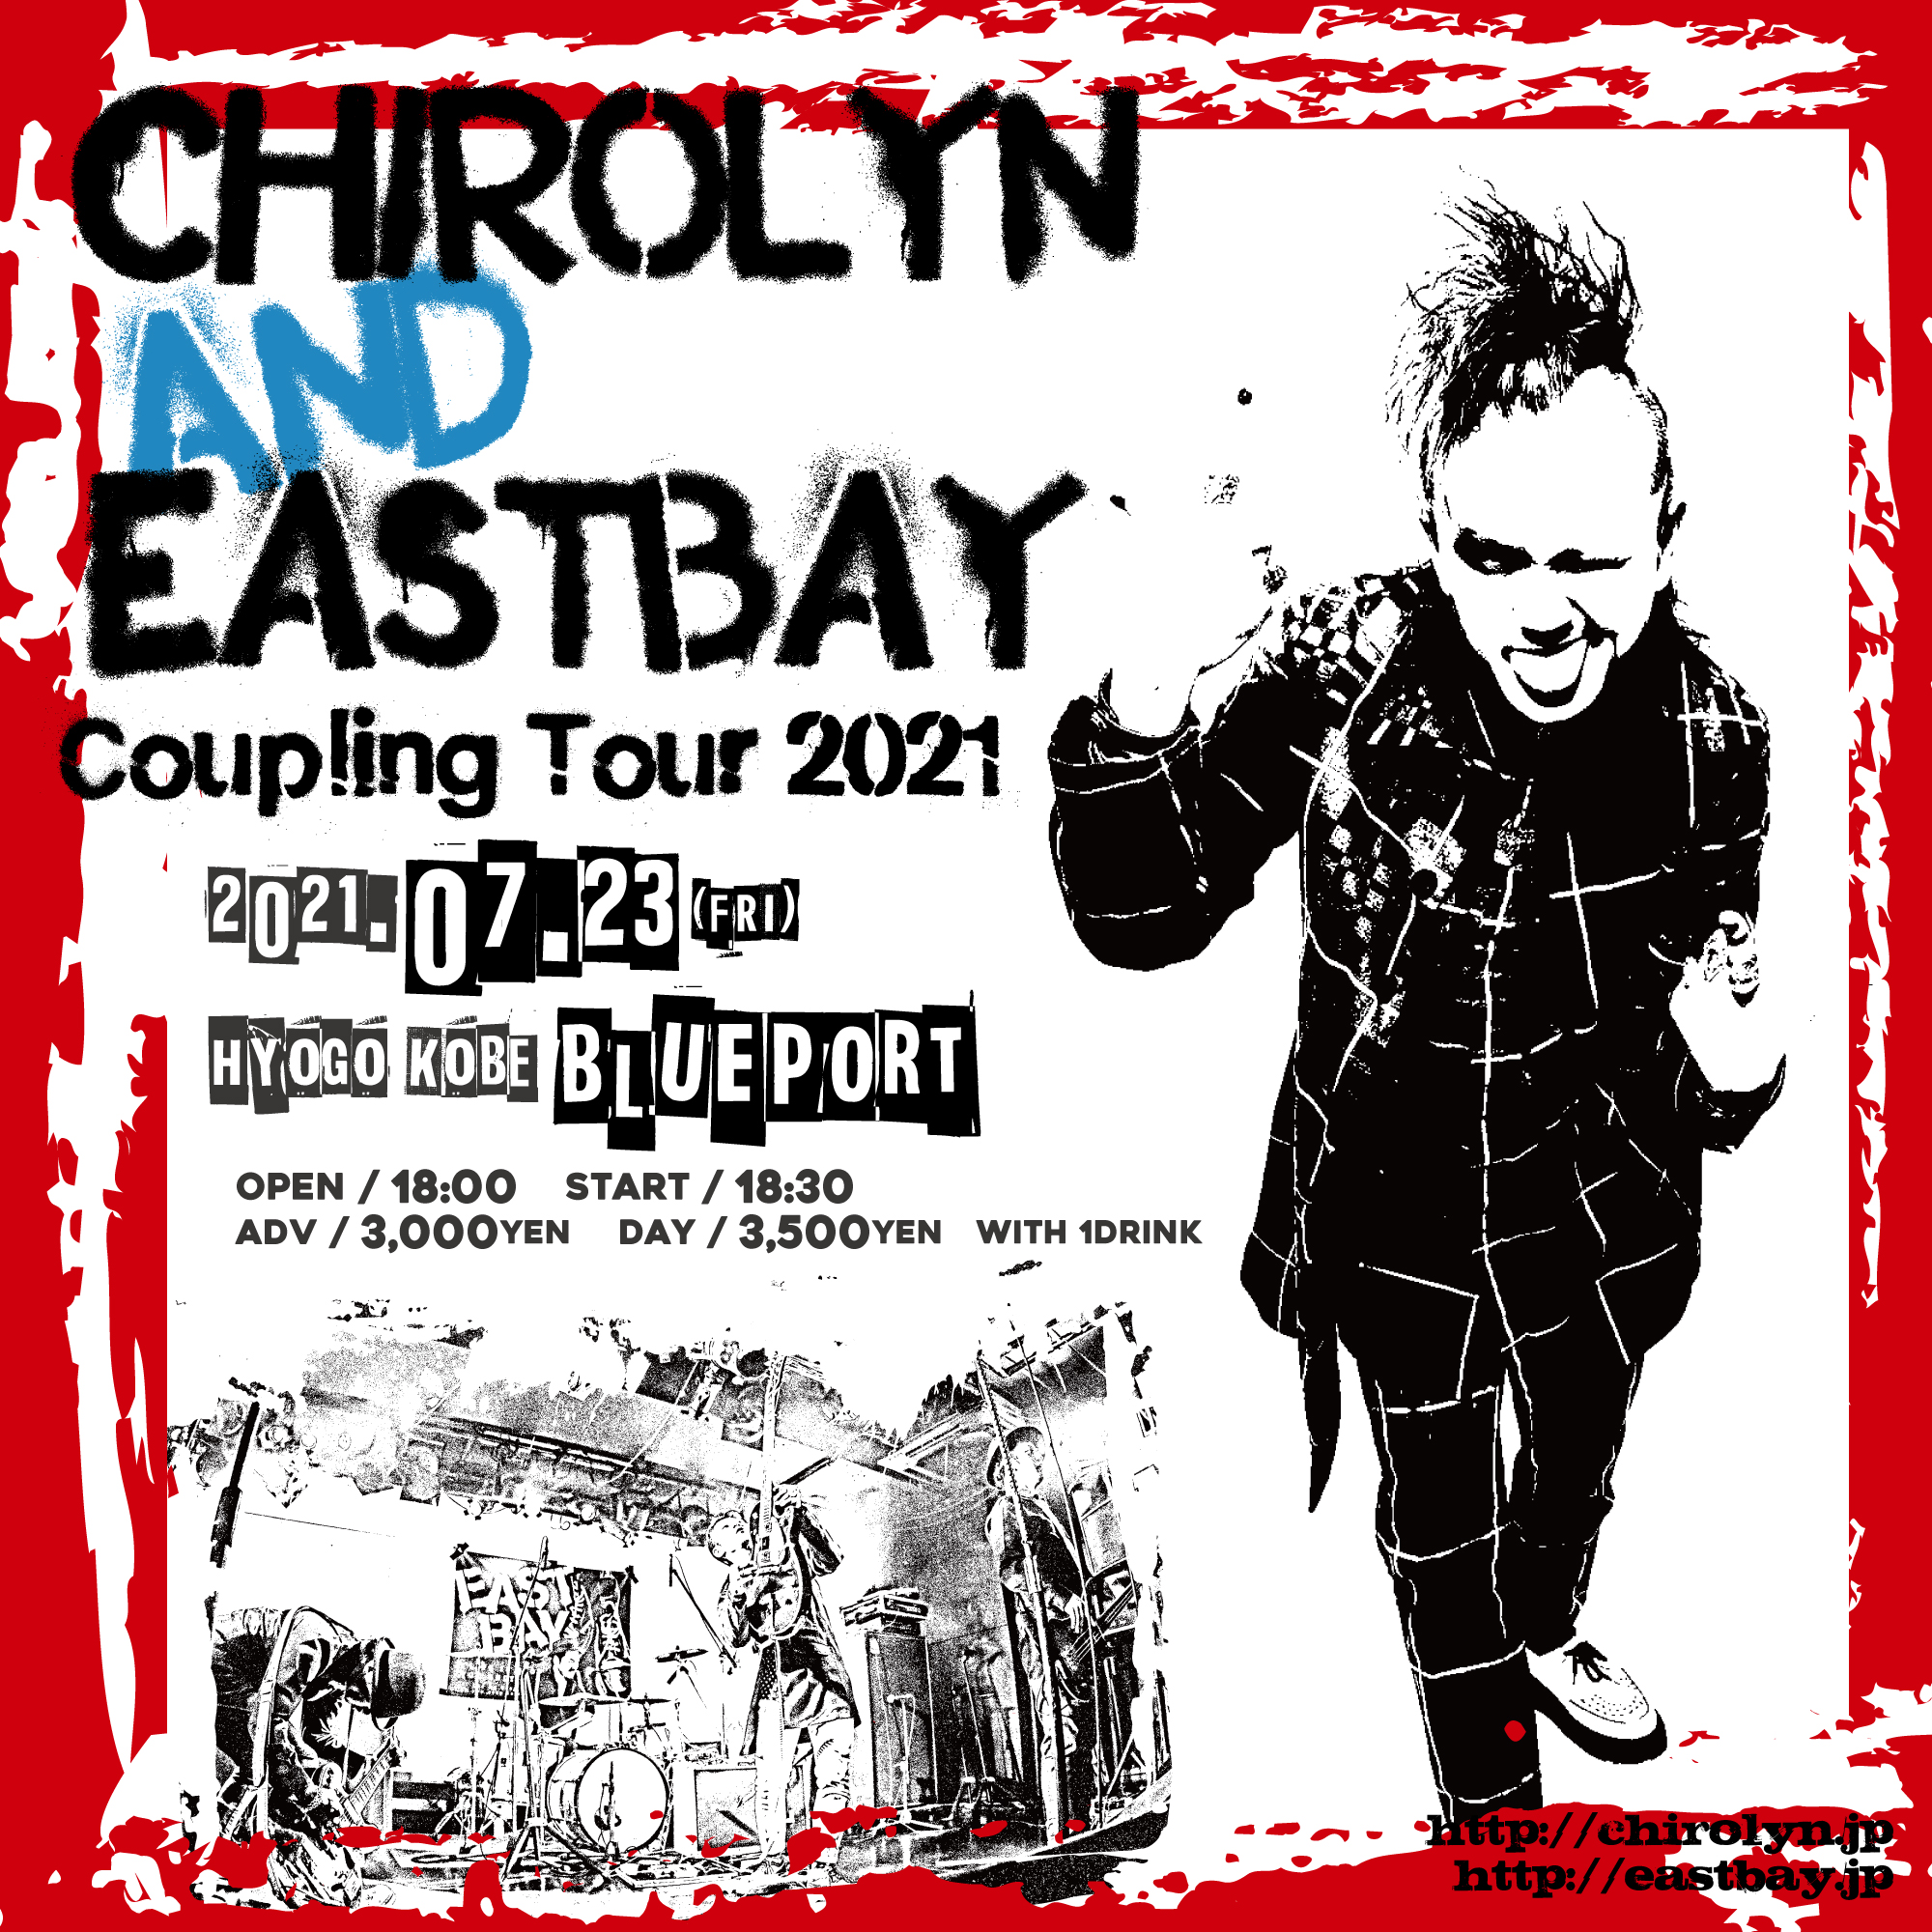 Chirolyn & EASTBAY Coupling Tour 2021 in 神戸の写真